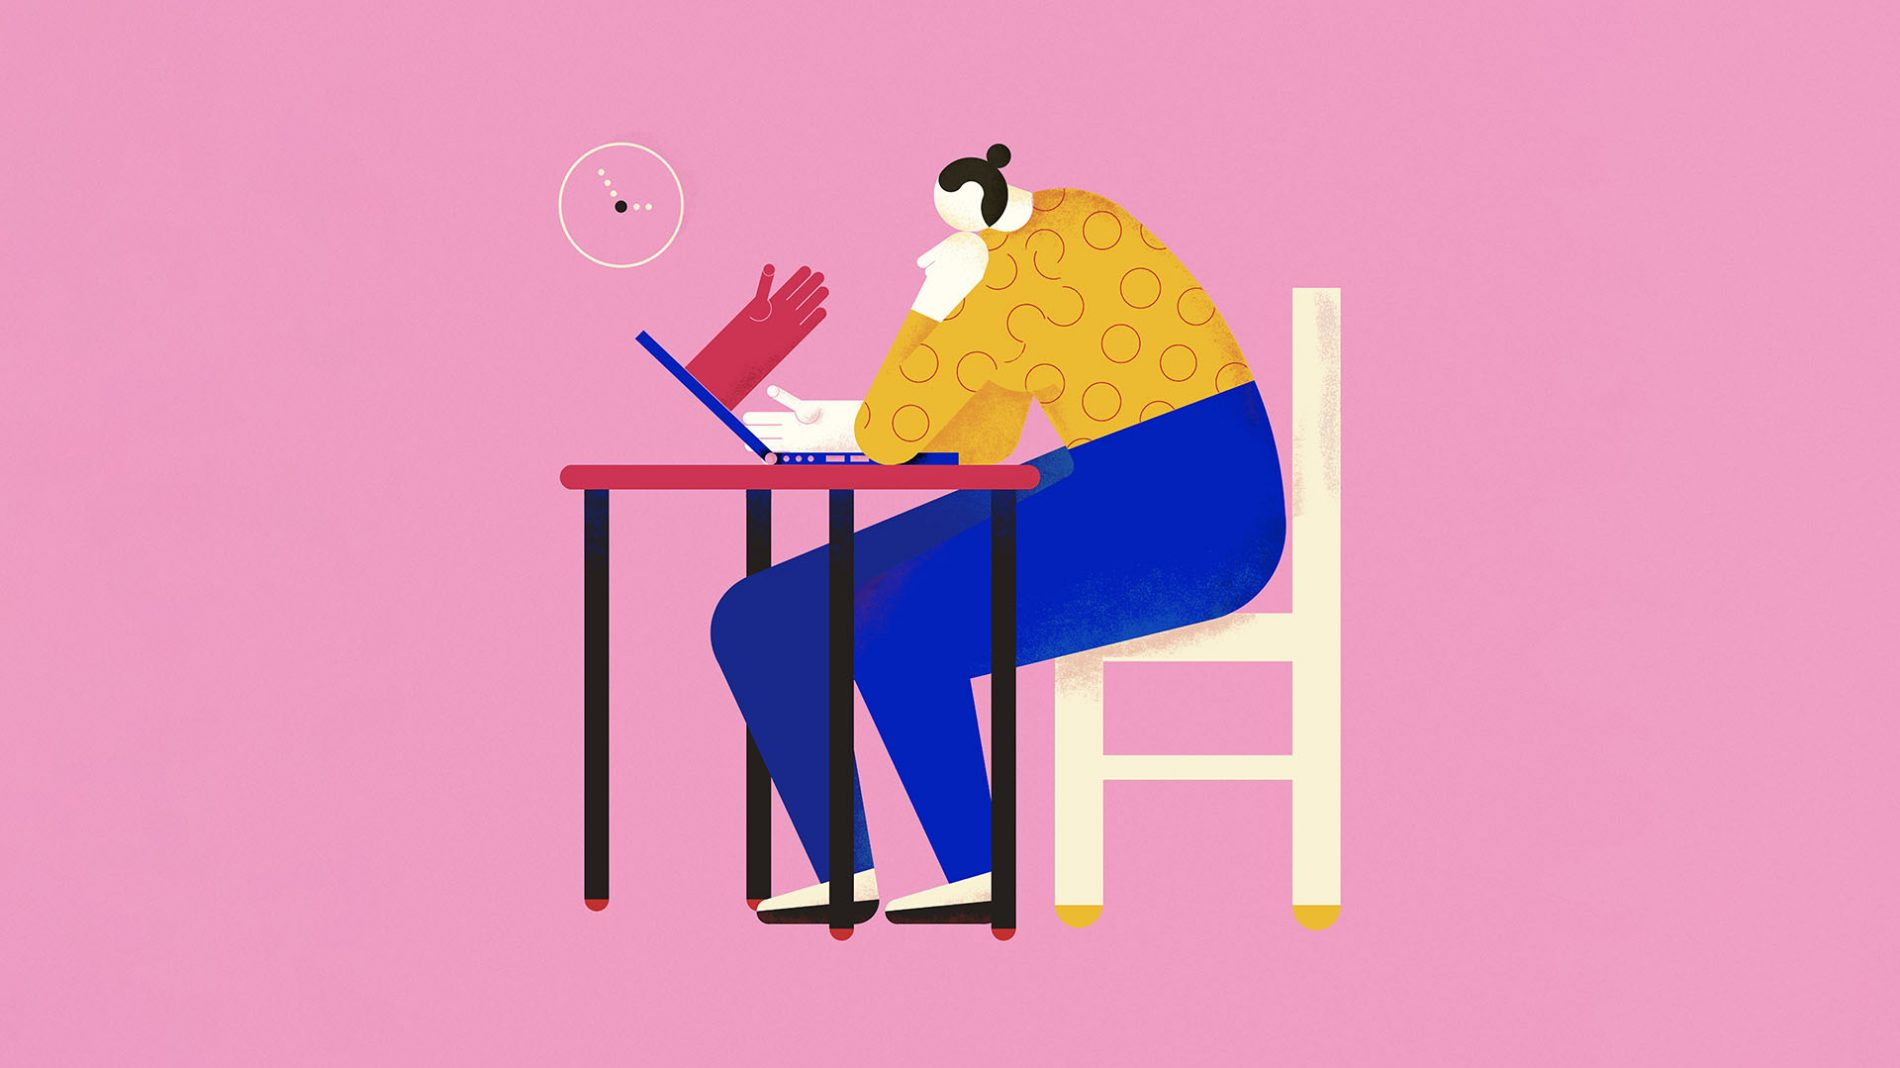 Illustration of a person sitting at a desk and on their laptop with a hand coming out of the screen towards theirs - mental health treatment